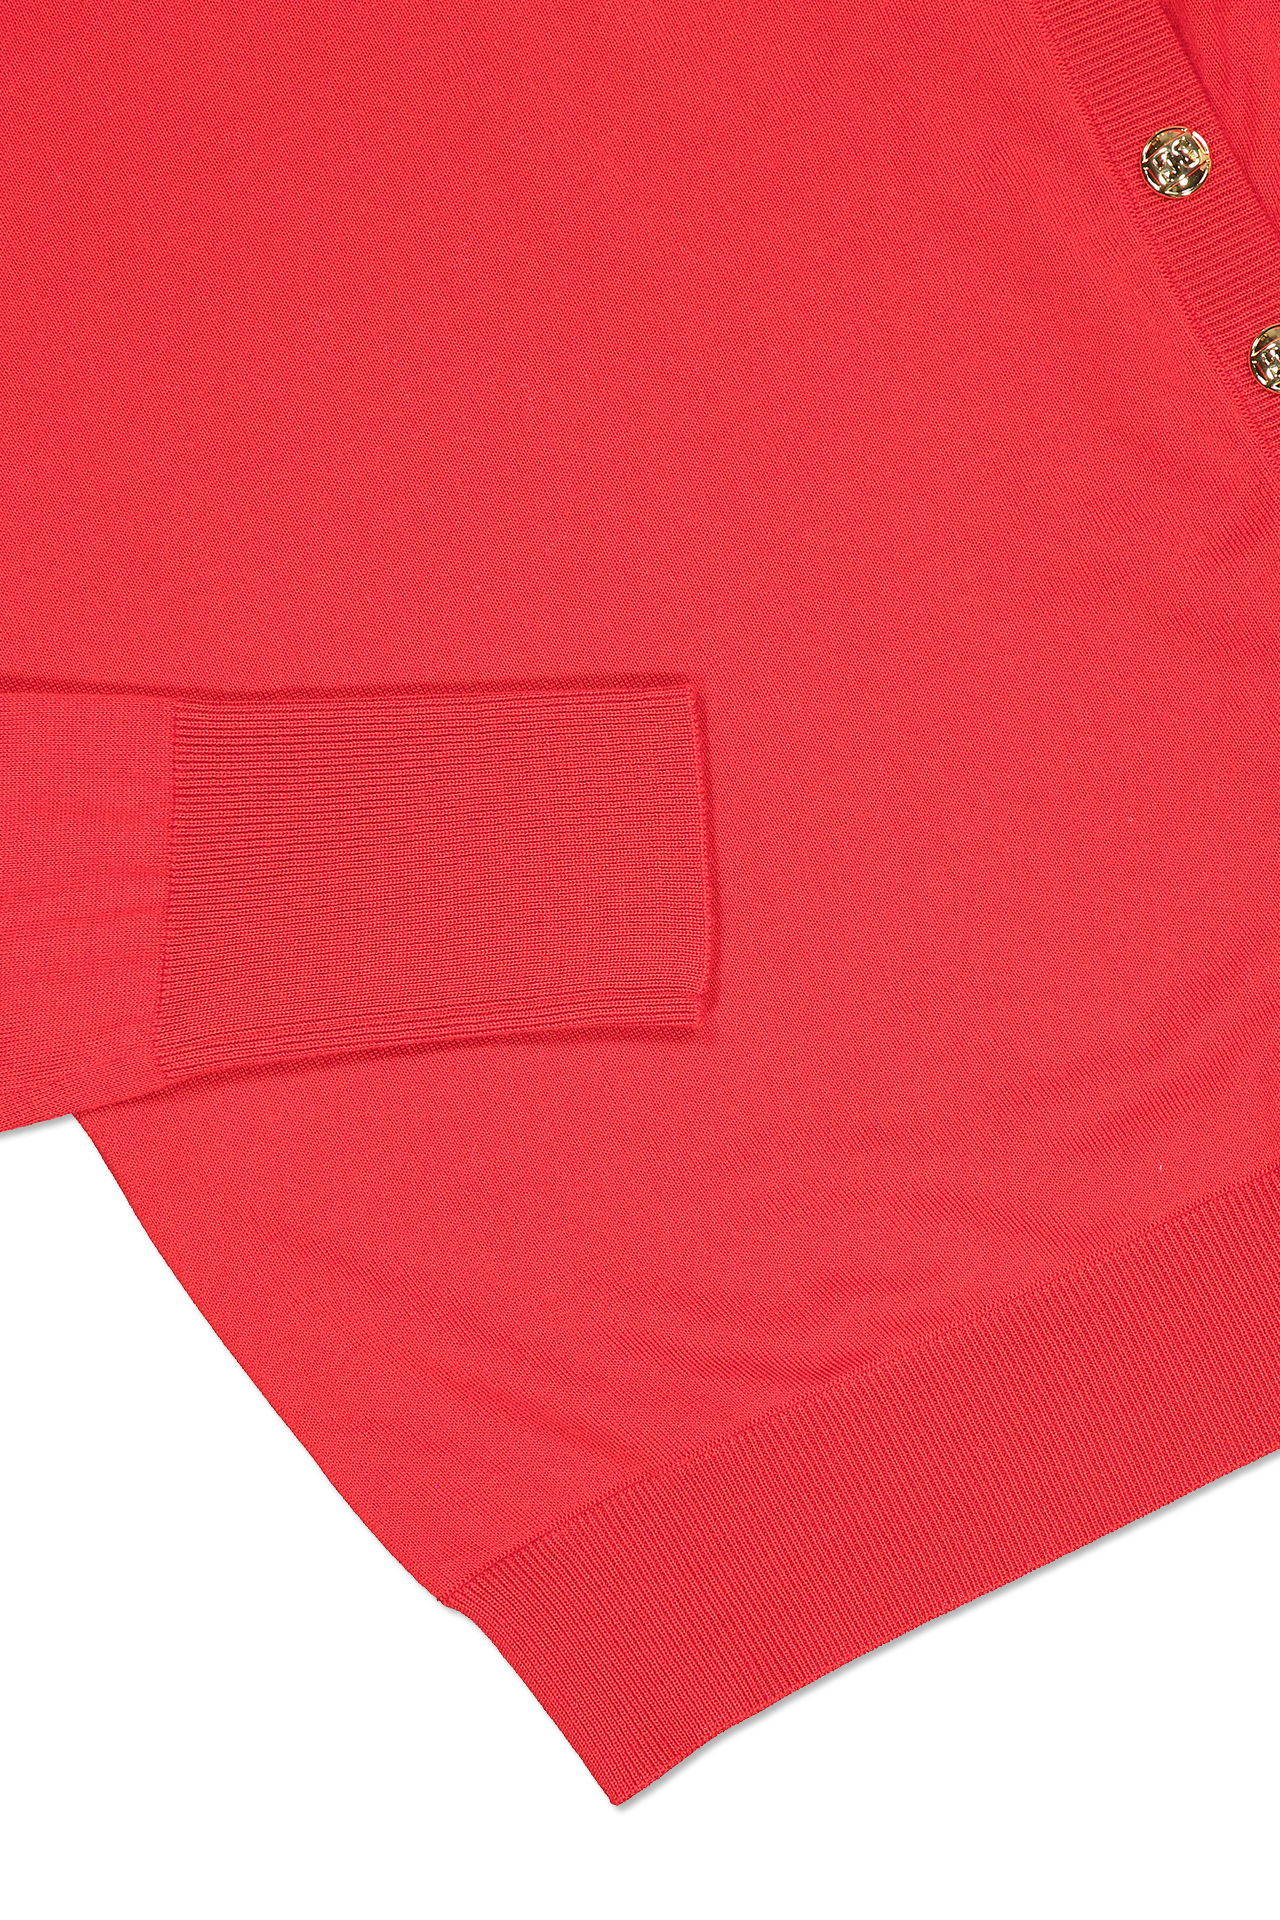 Hemline and sleeve detail image of Escada Seton Turtleneck Sweater